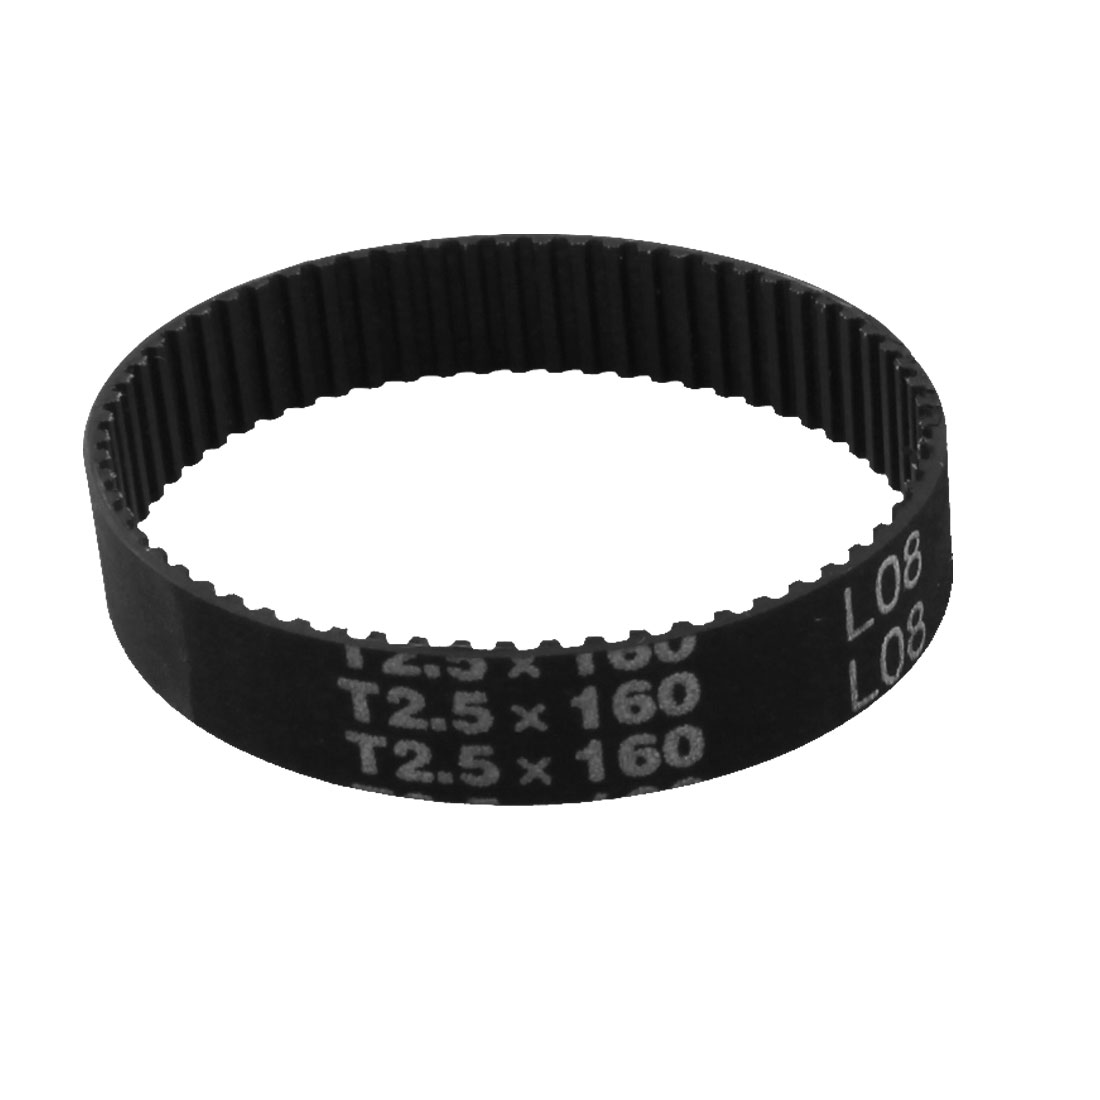 T2.5x160 64-Tooth 2.5mm Pitch 10mm Width Black Industrial Stepper Motor Groove Synchronous Timing Belt 160mm Girth